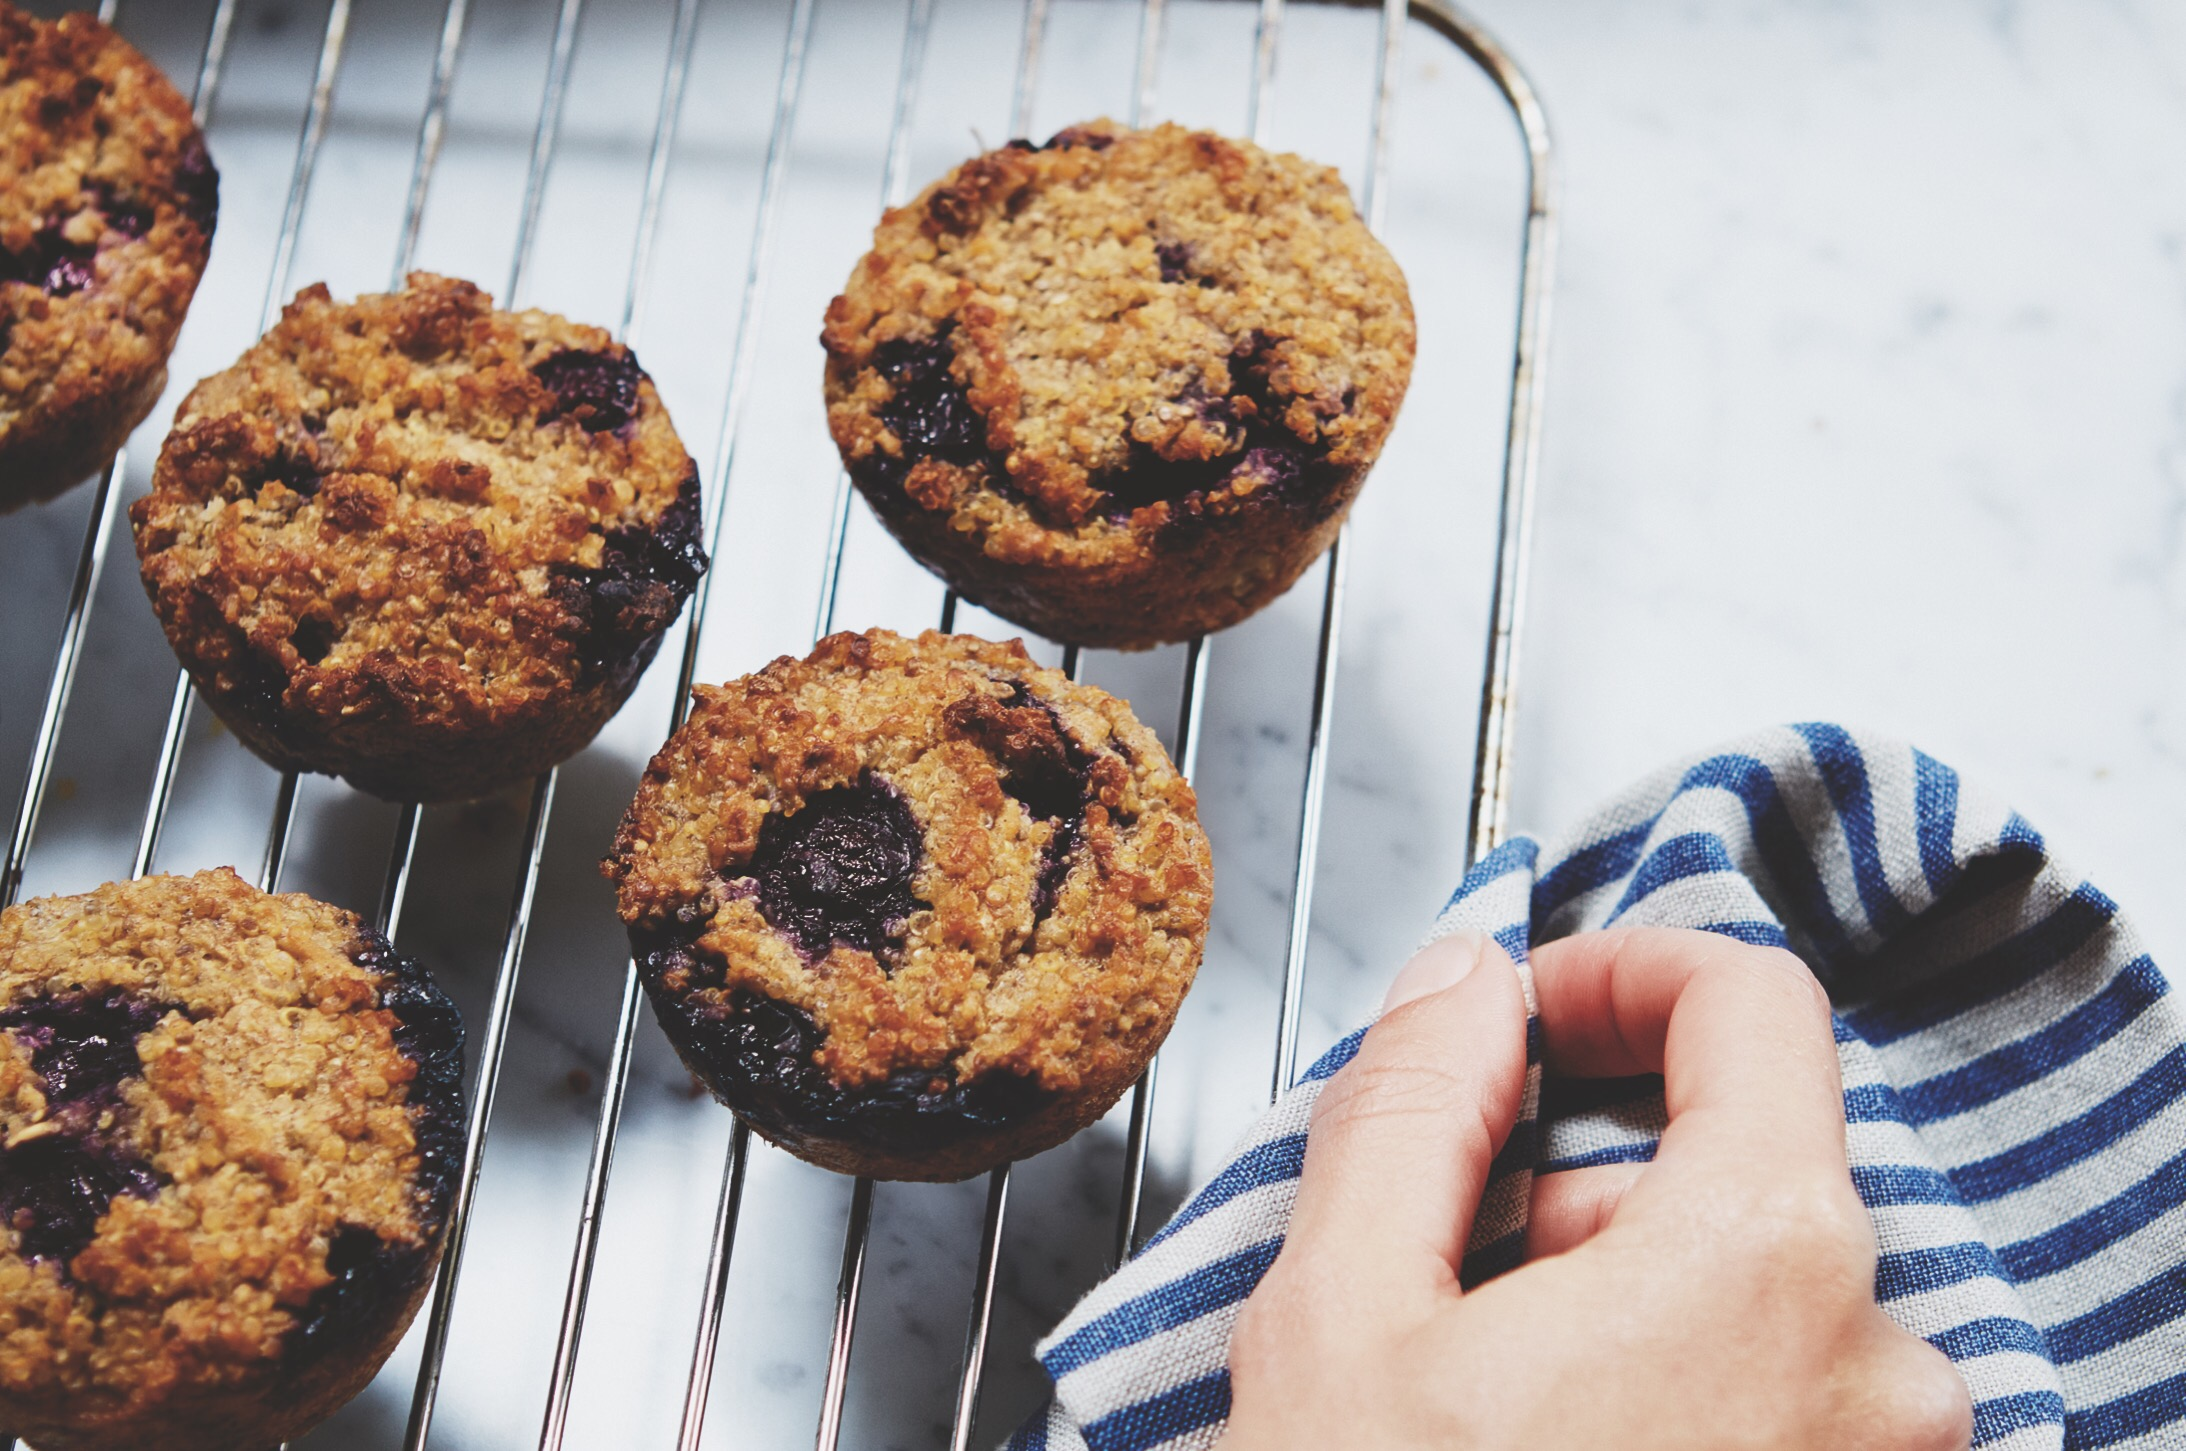 Blueberry and quinoa muffins